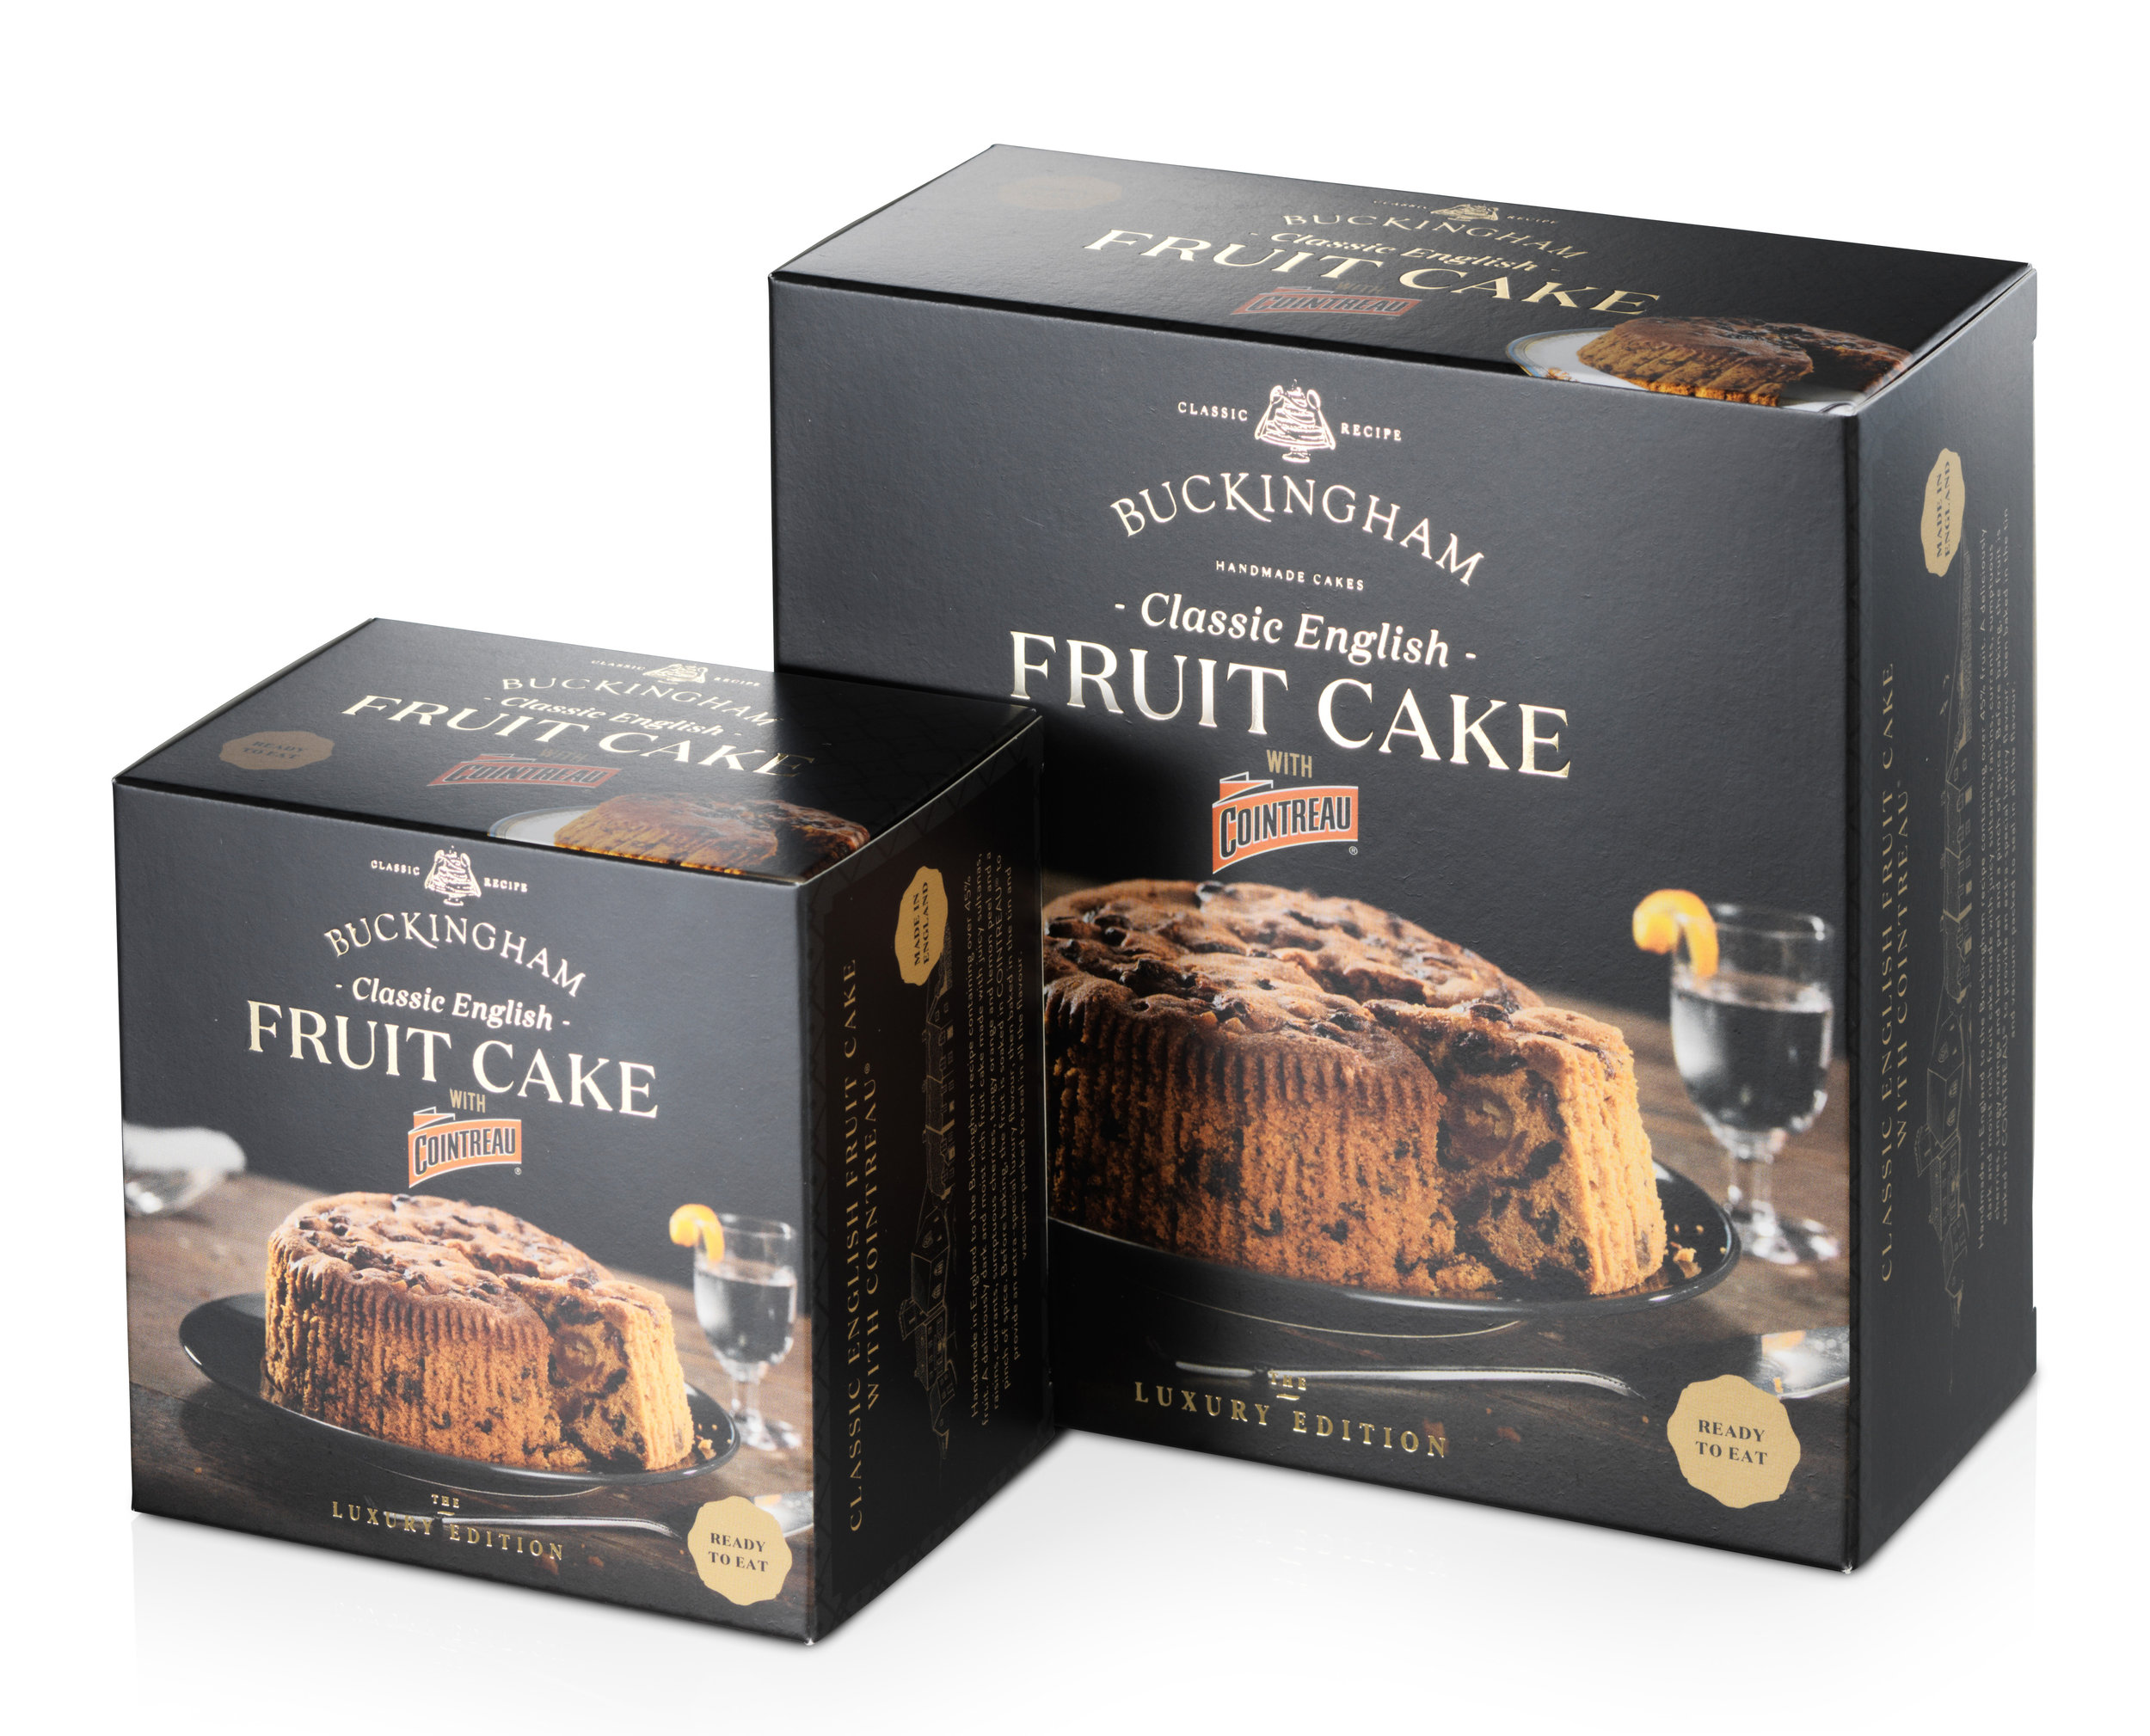 June 2019 - Printed at last! Our new 'Luxury Edition' box packaging finally arrives and we're thrilled with it. The quality is superb. Beautifully printed with the addition of gold foil lettering. It shouts luxury and specialness. The packaging does justice to the sophisticated flavour of the cakes, with recipes containing a minimum 5% added spirit/liqueur. This truly is unparalleled fruit cake luxury!